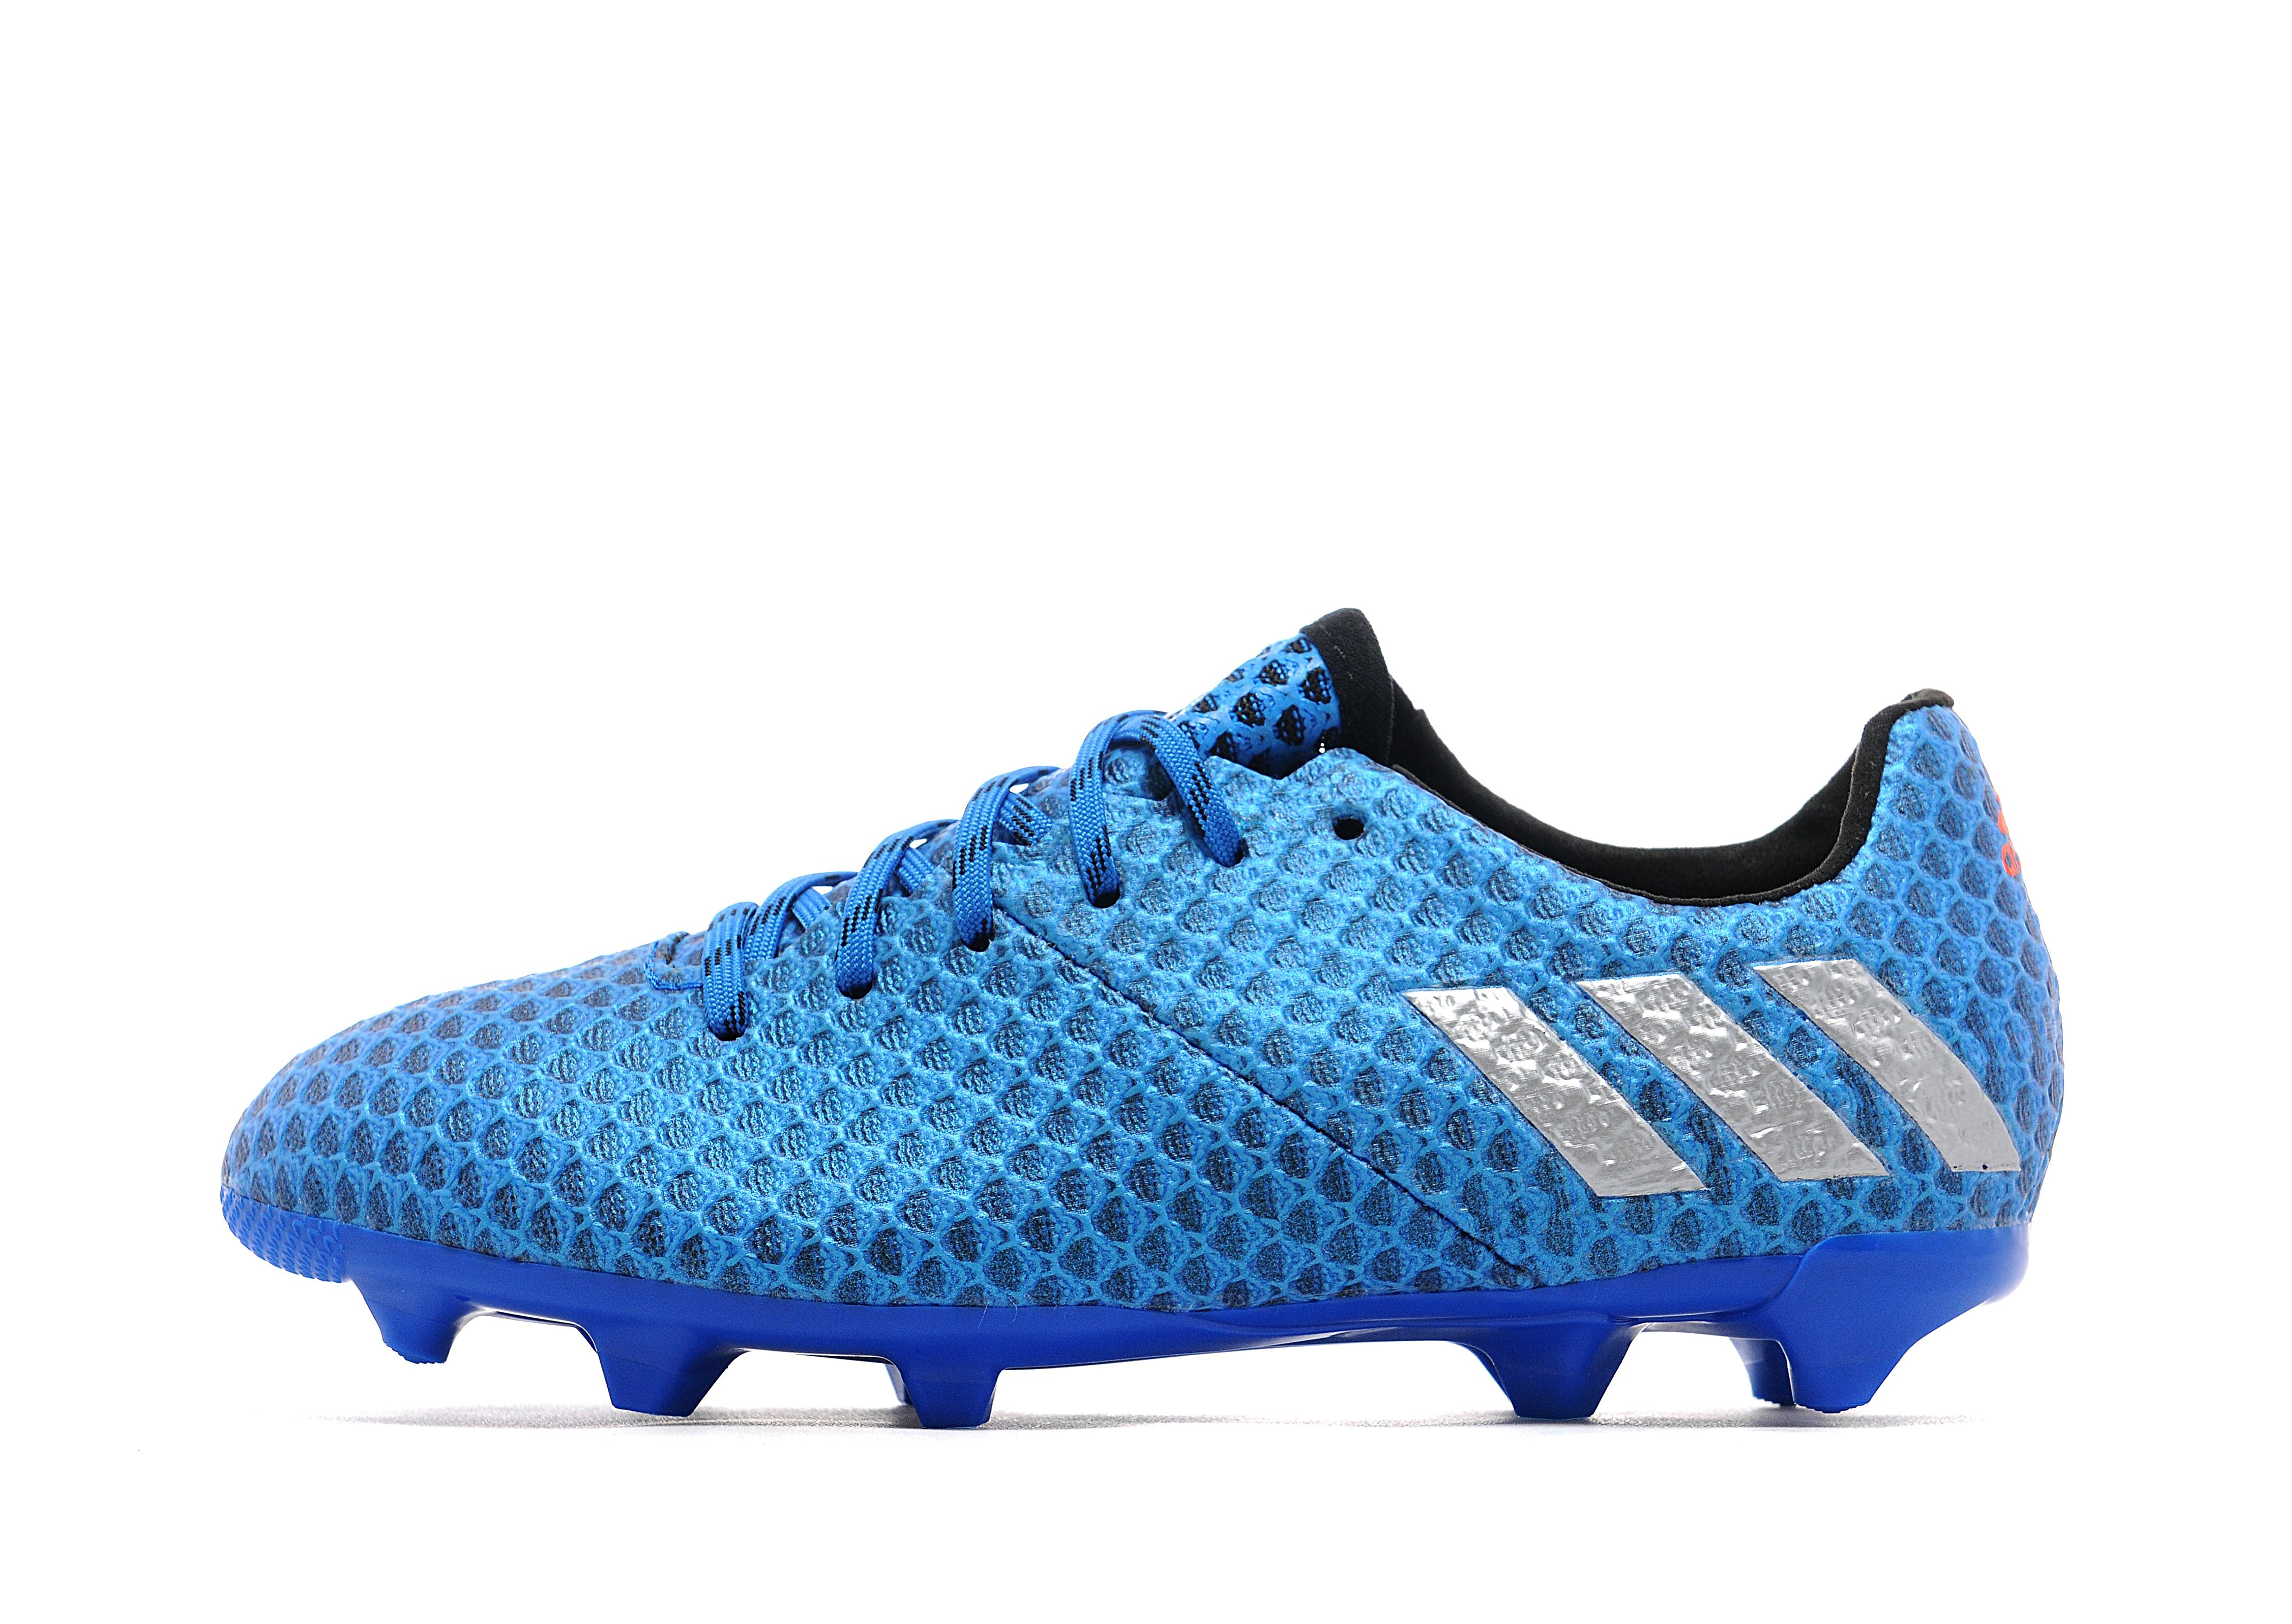 adidas Messi 16.1 FG Children